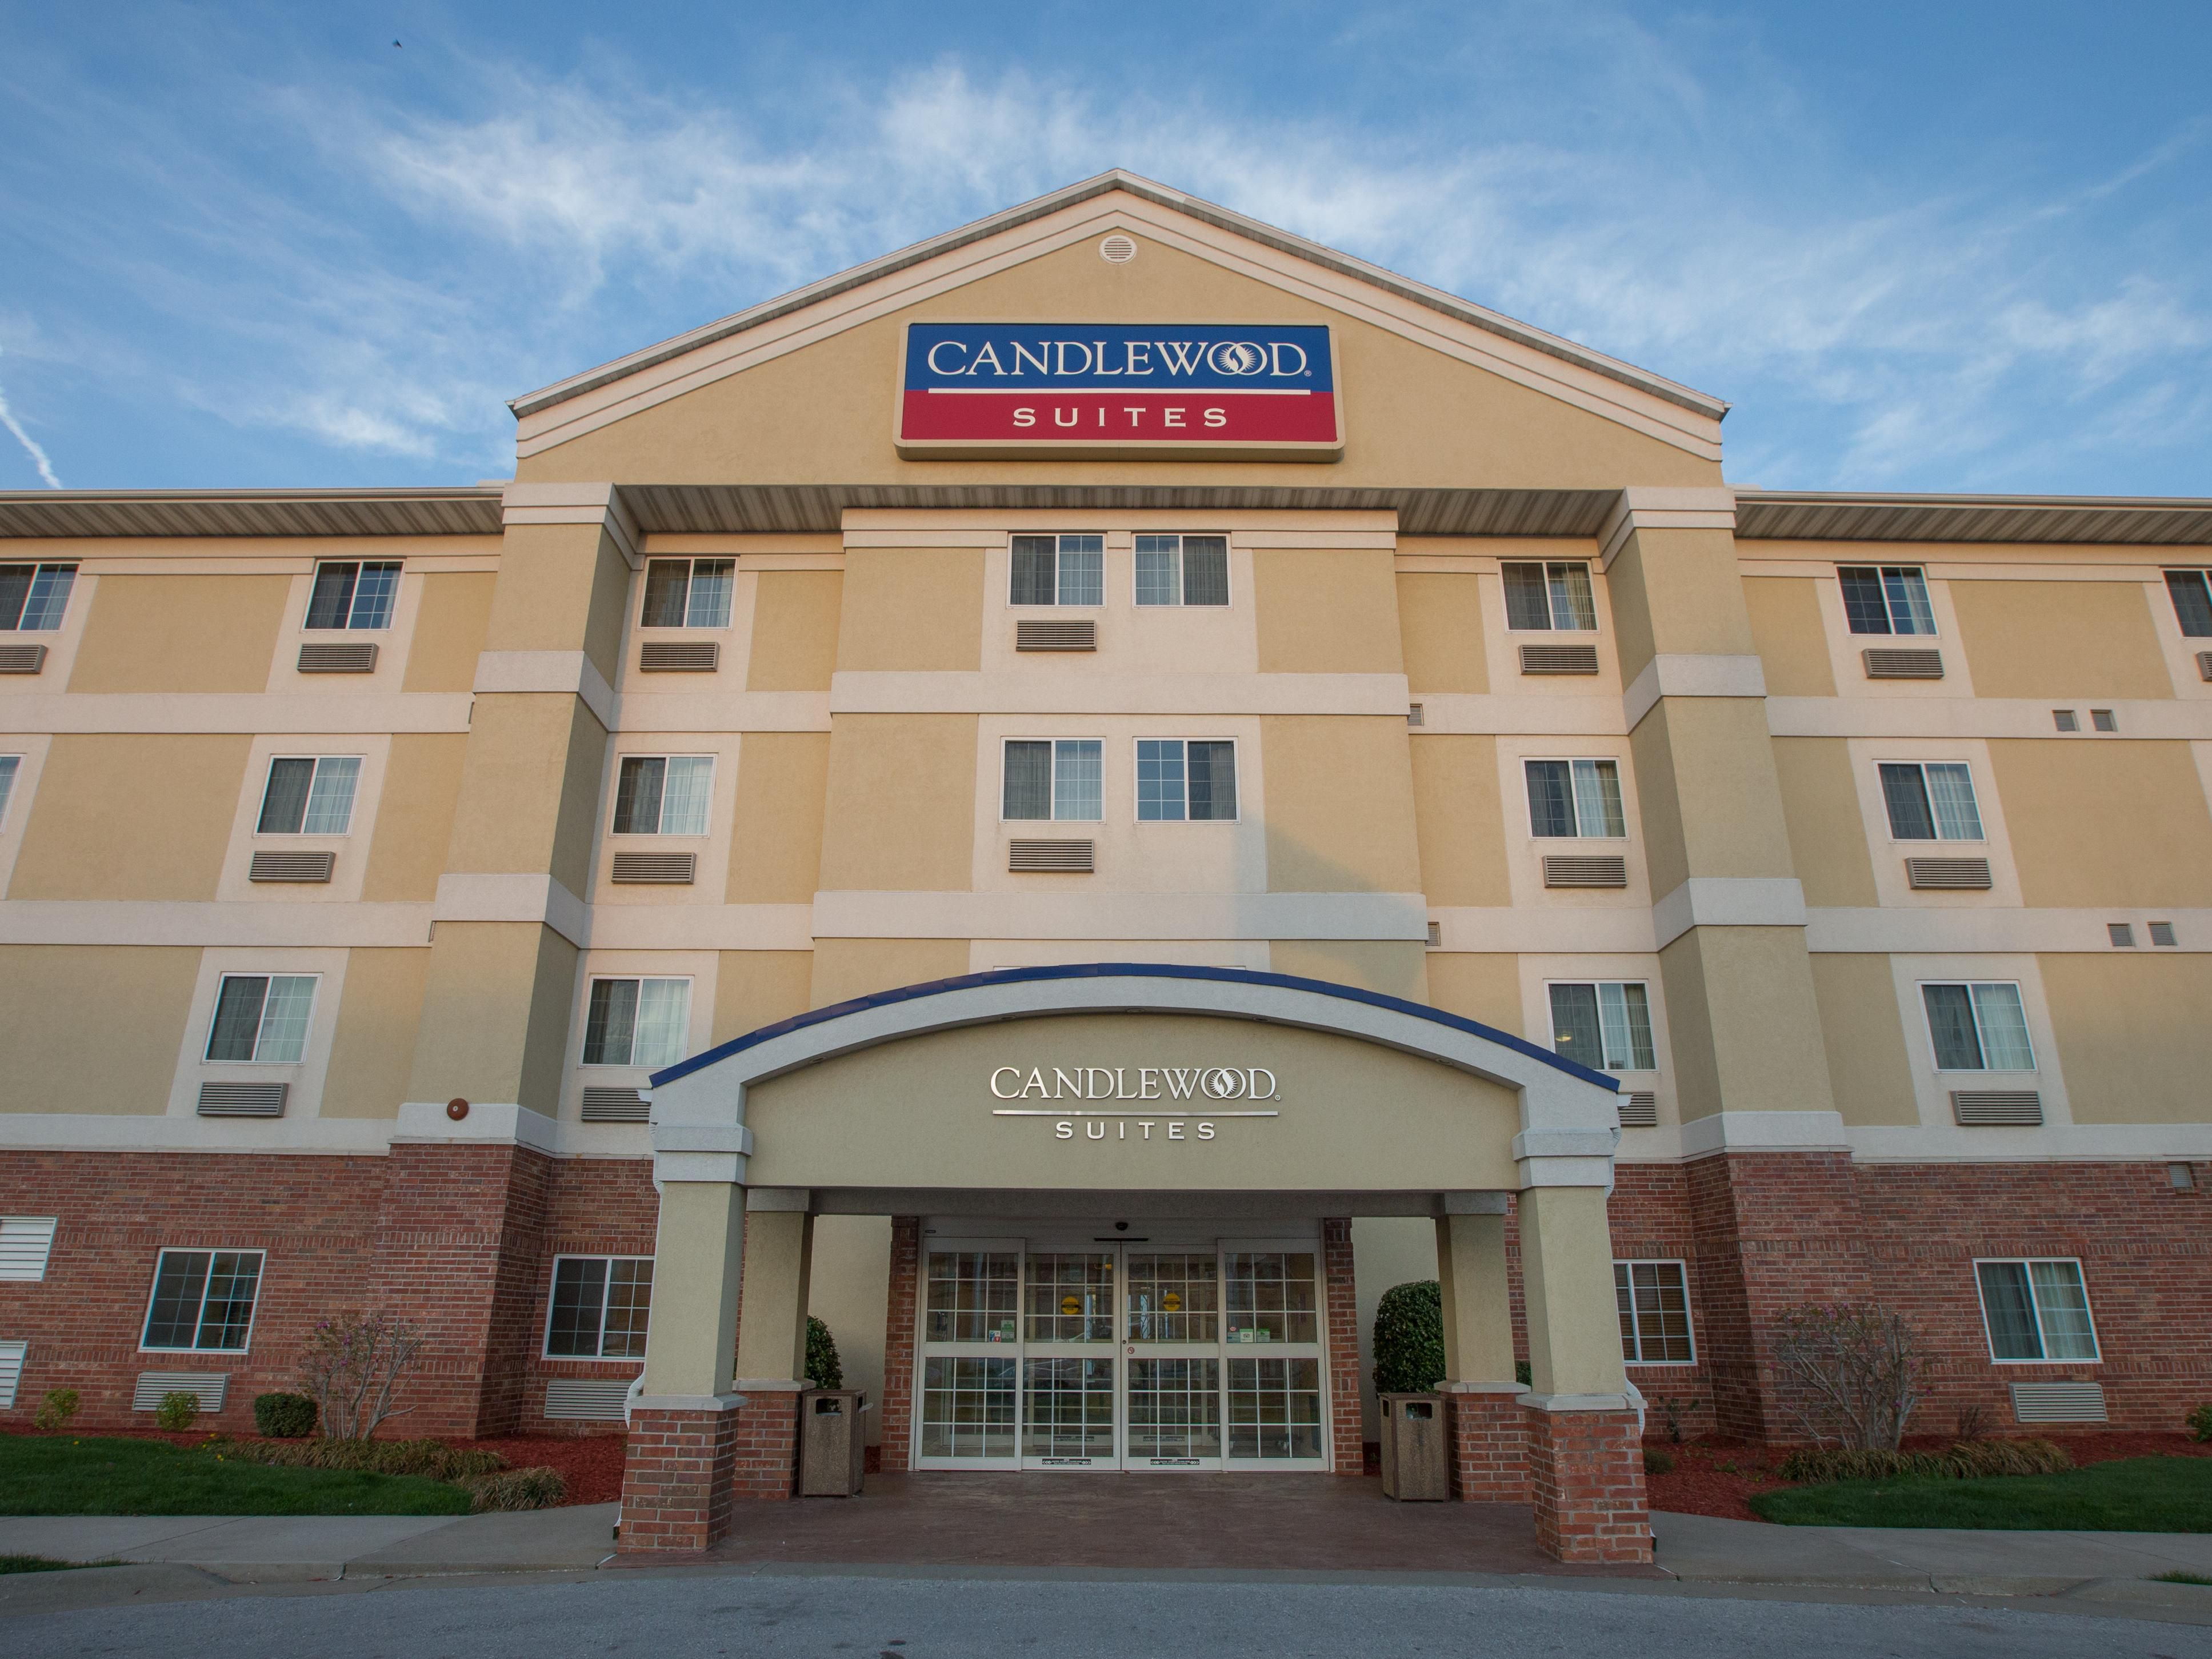 springfield hotels candlewood suites springfield extended stay springfield hotels candlewood suites springfield extended stay hotel in springfield missouri